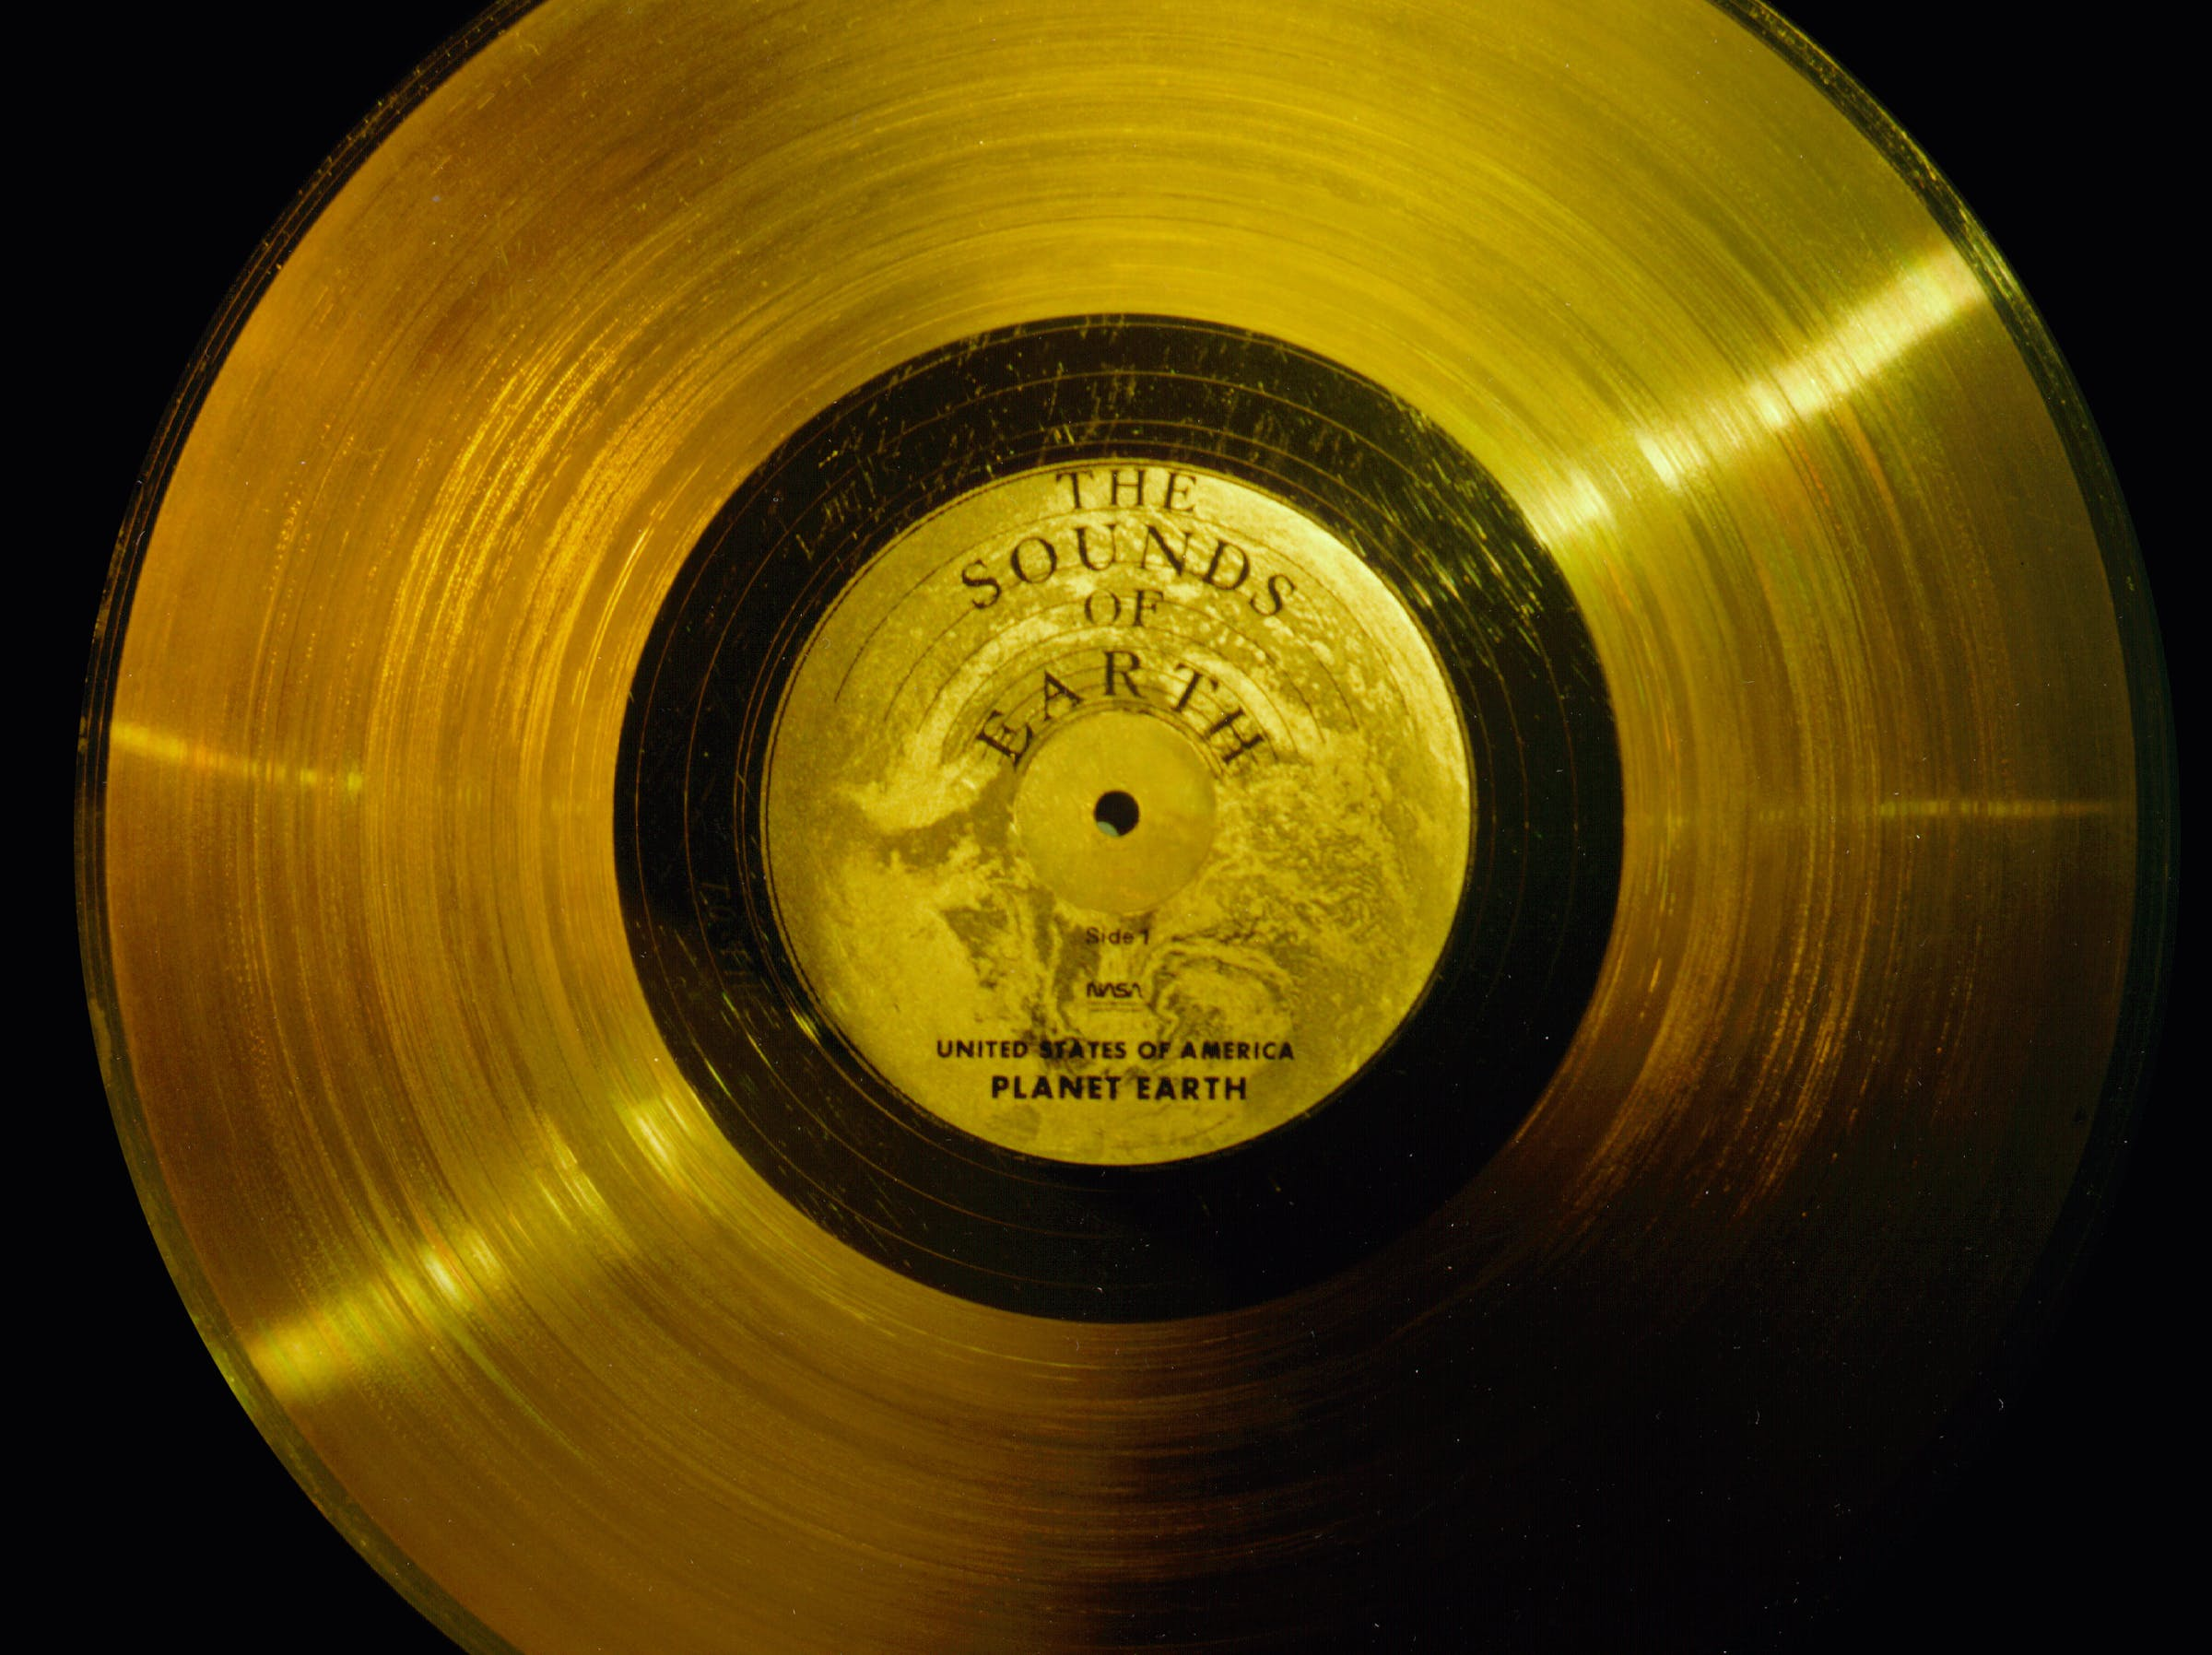 """The Sounds of Earth"": The Voyager Golden Record"